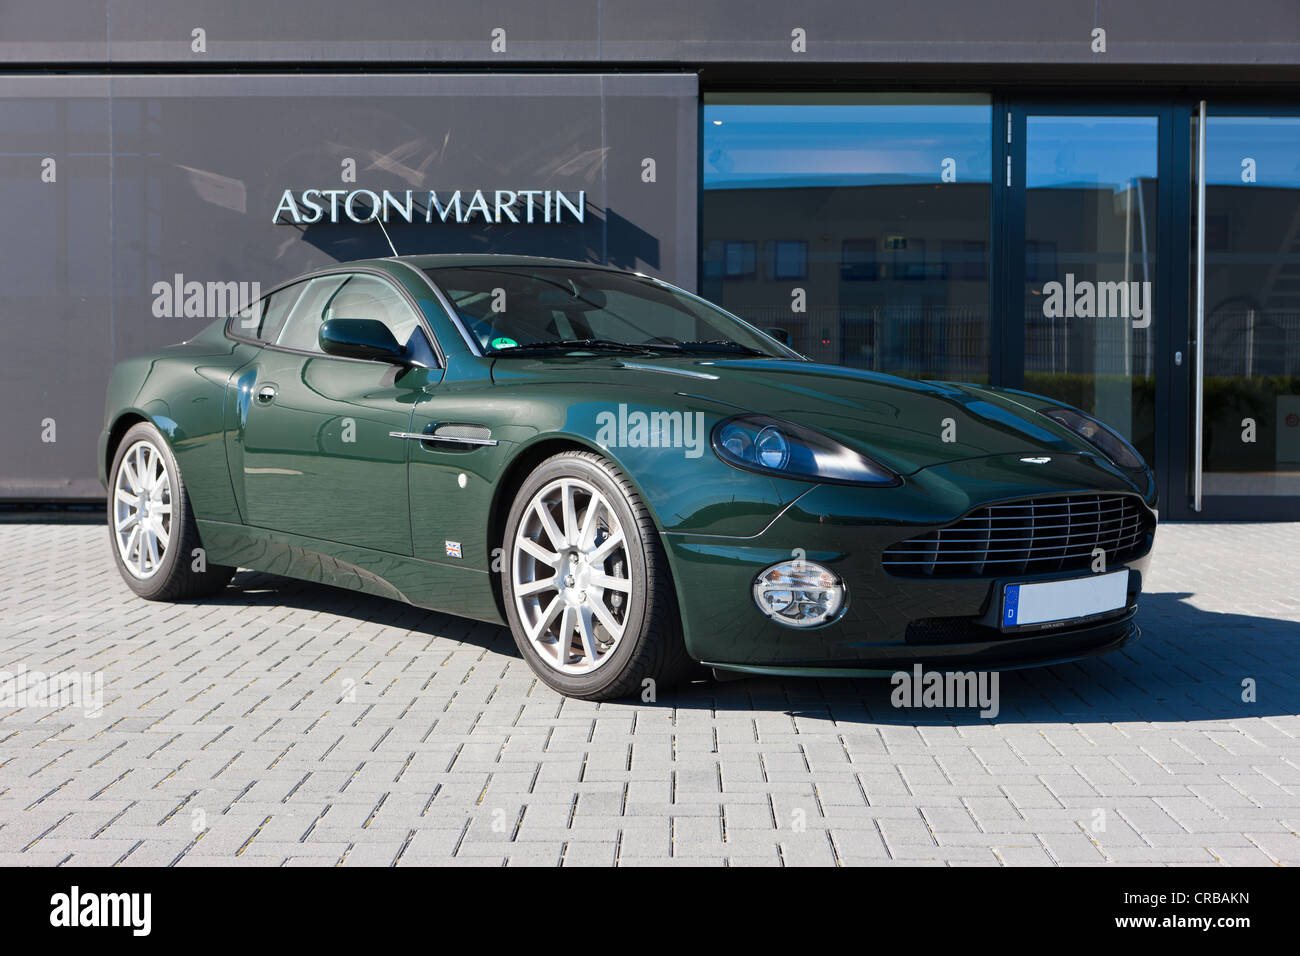 Vanquish S High Resolution Stock Photography And Images Alamy